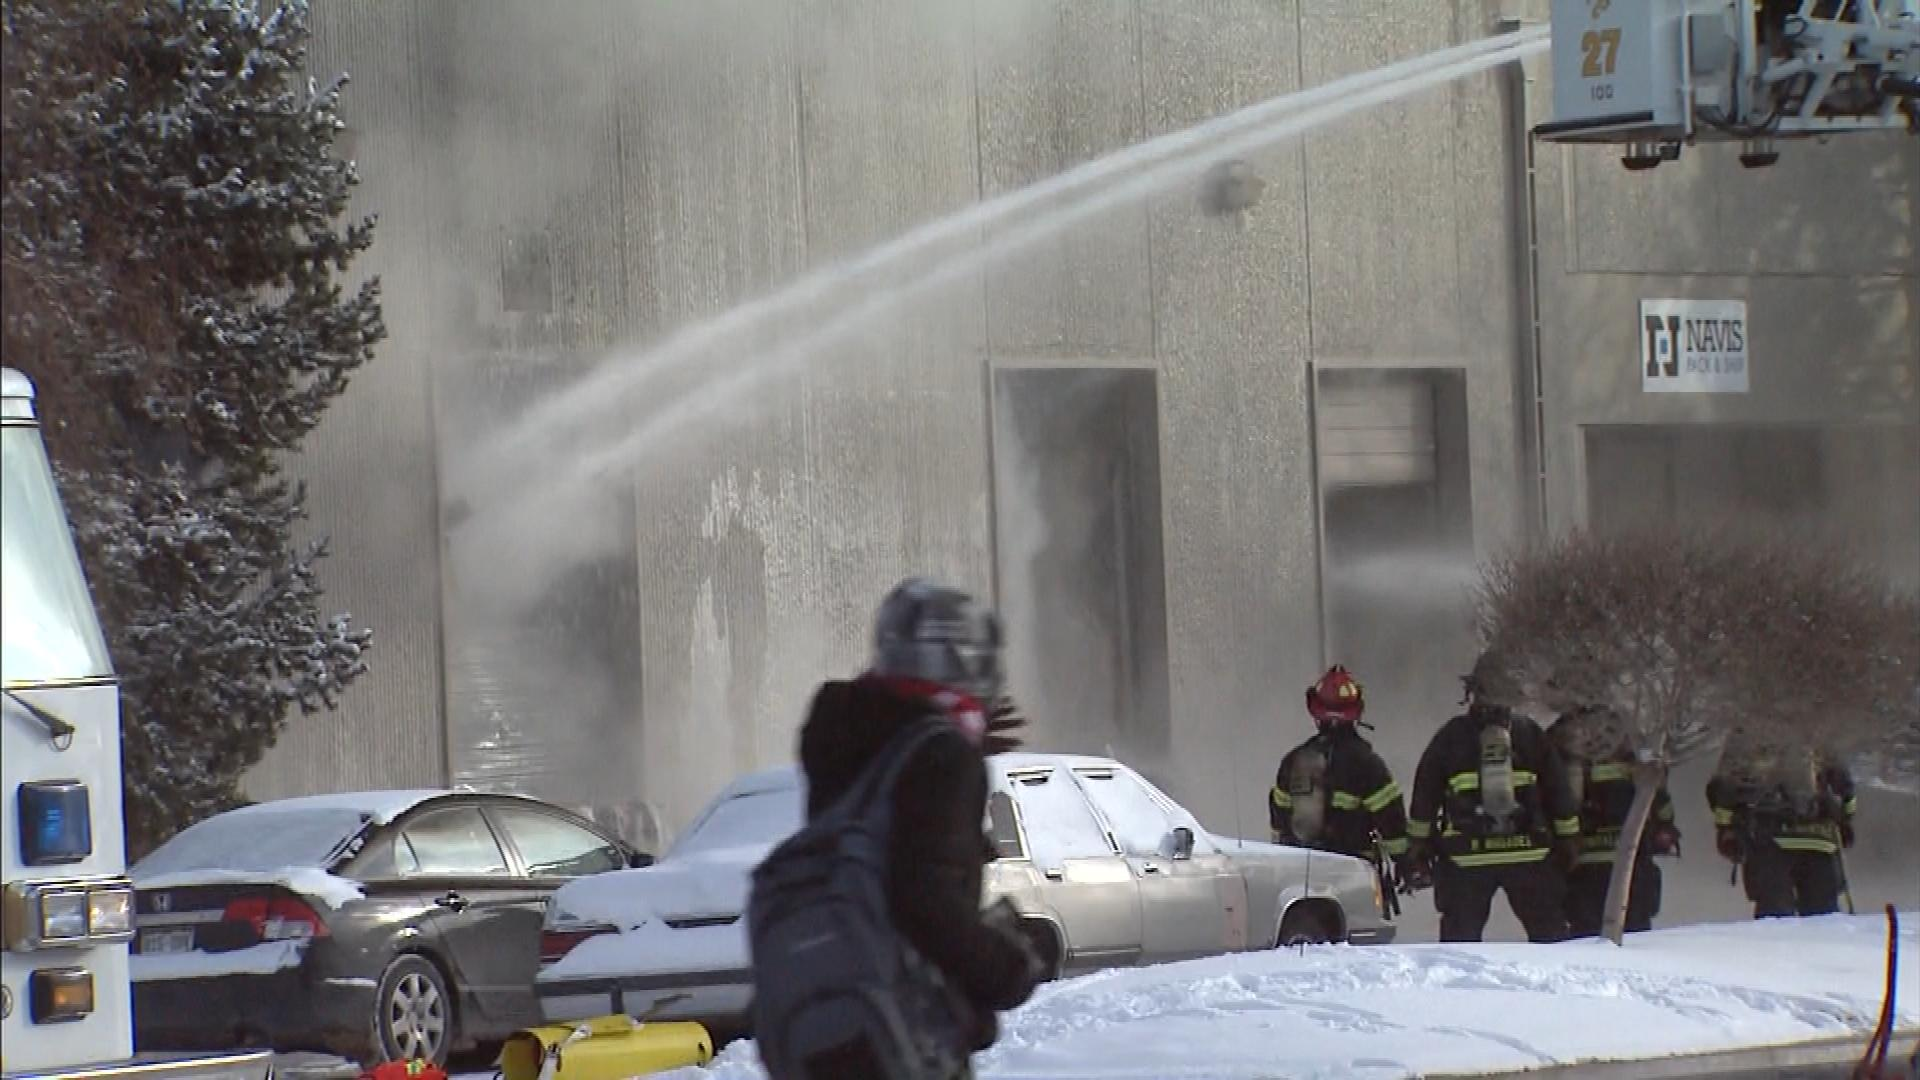 The warehouse fire on Tuesday (credit: CBS)